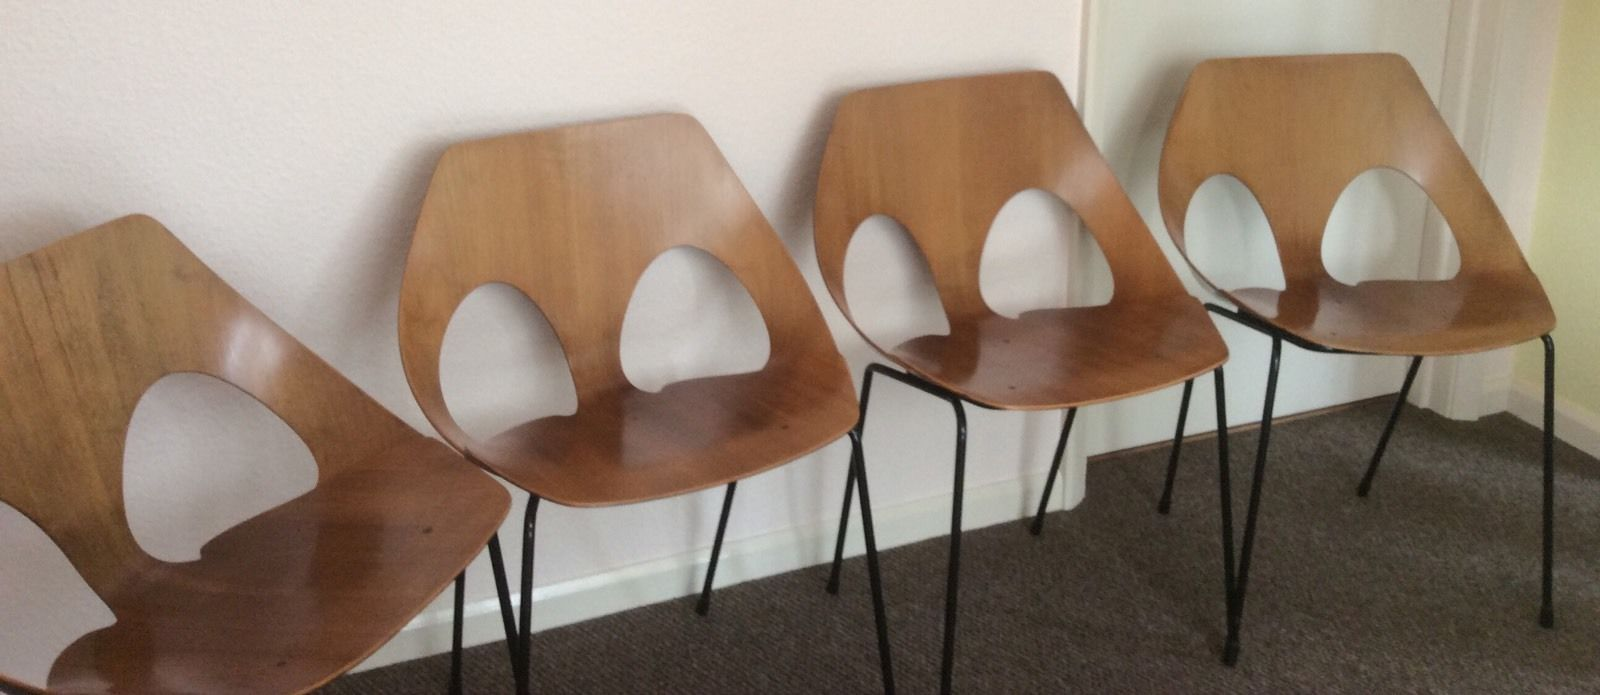 SET OF FOUR vintage Kandya jason chairs by Carl Jacobs and Frank Guille   eBay